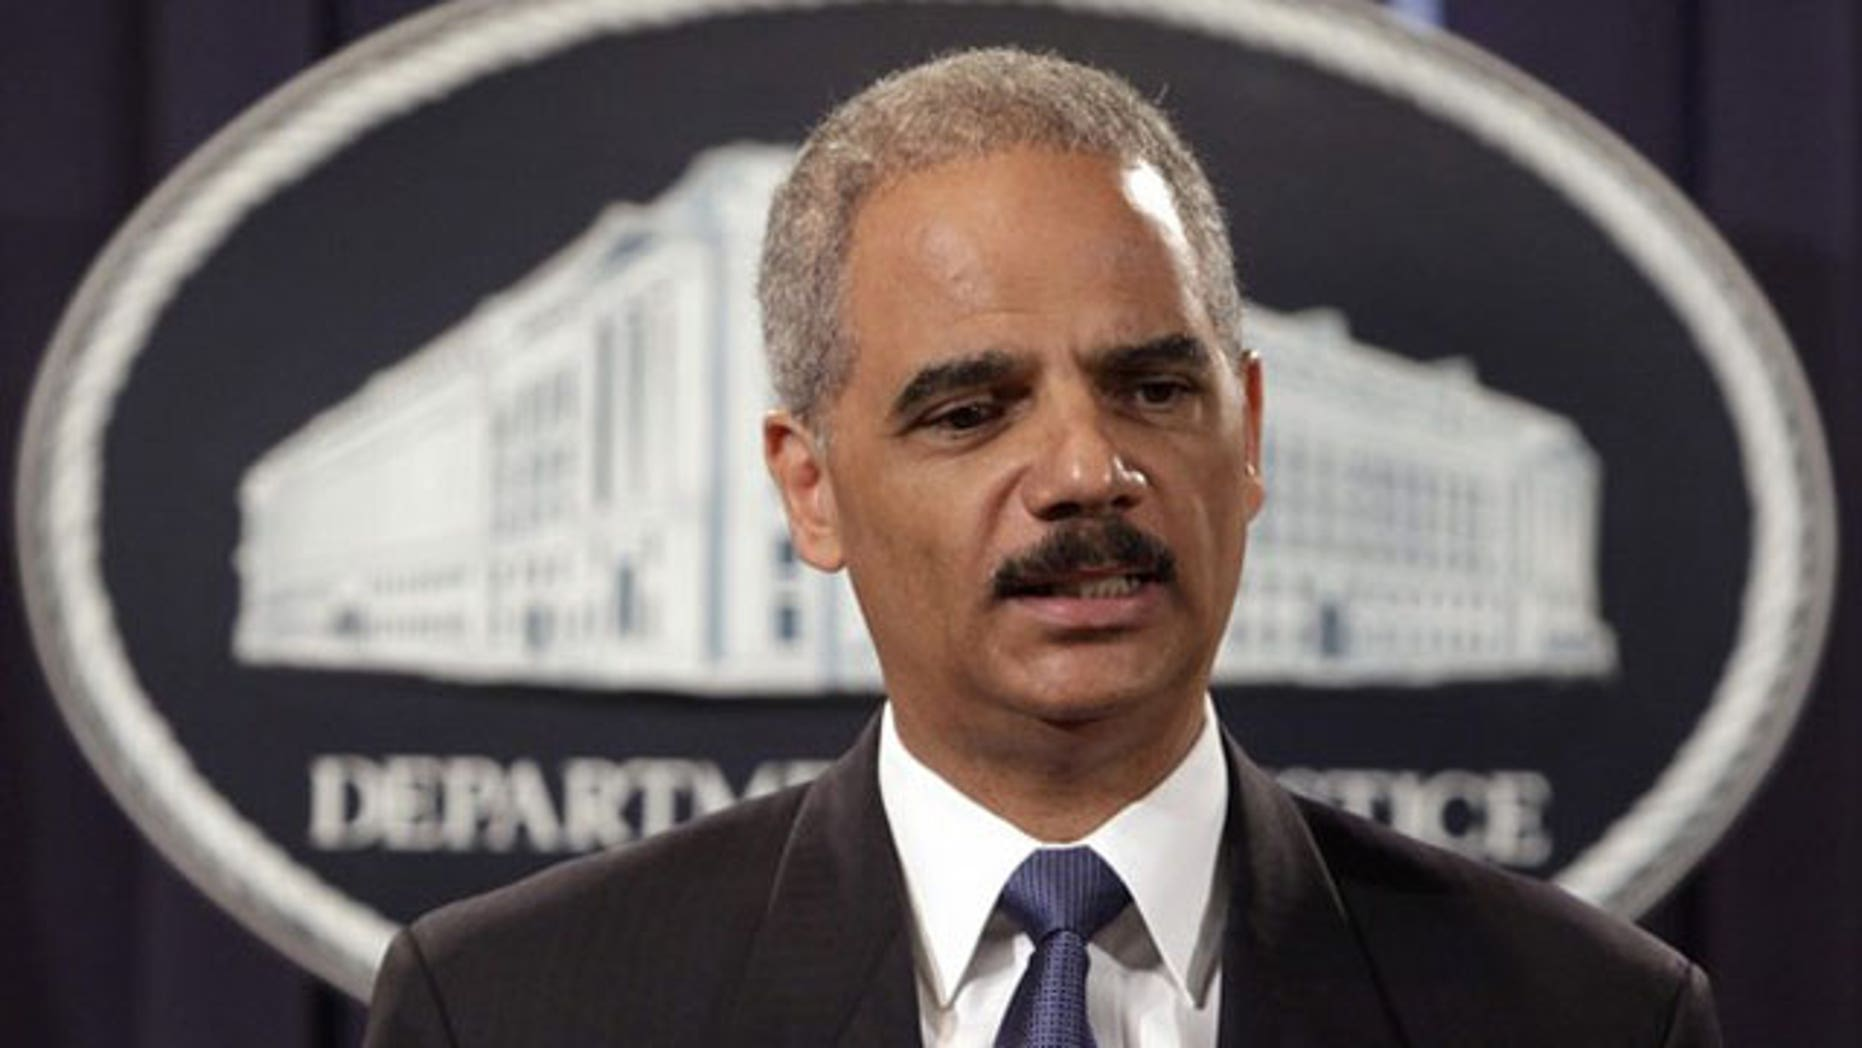 August 3: U.S. Attorney General Eric Holder holds a news conference in Washington